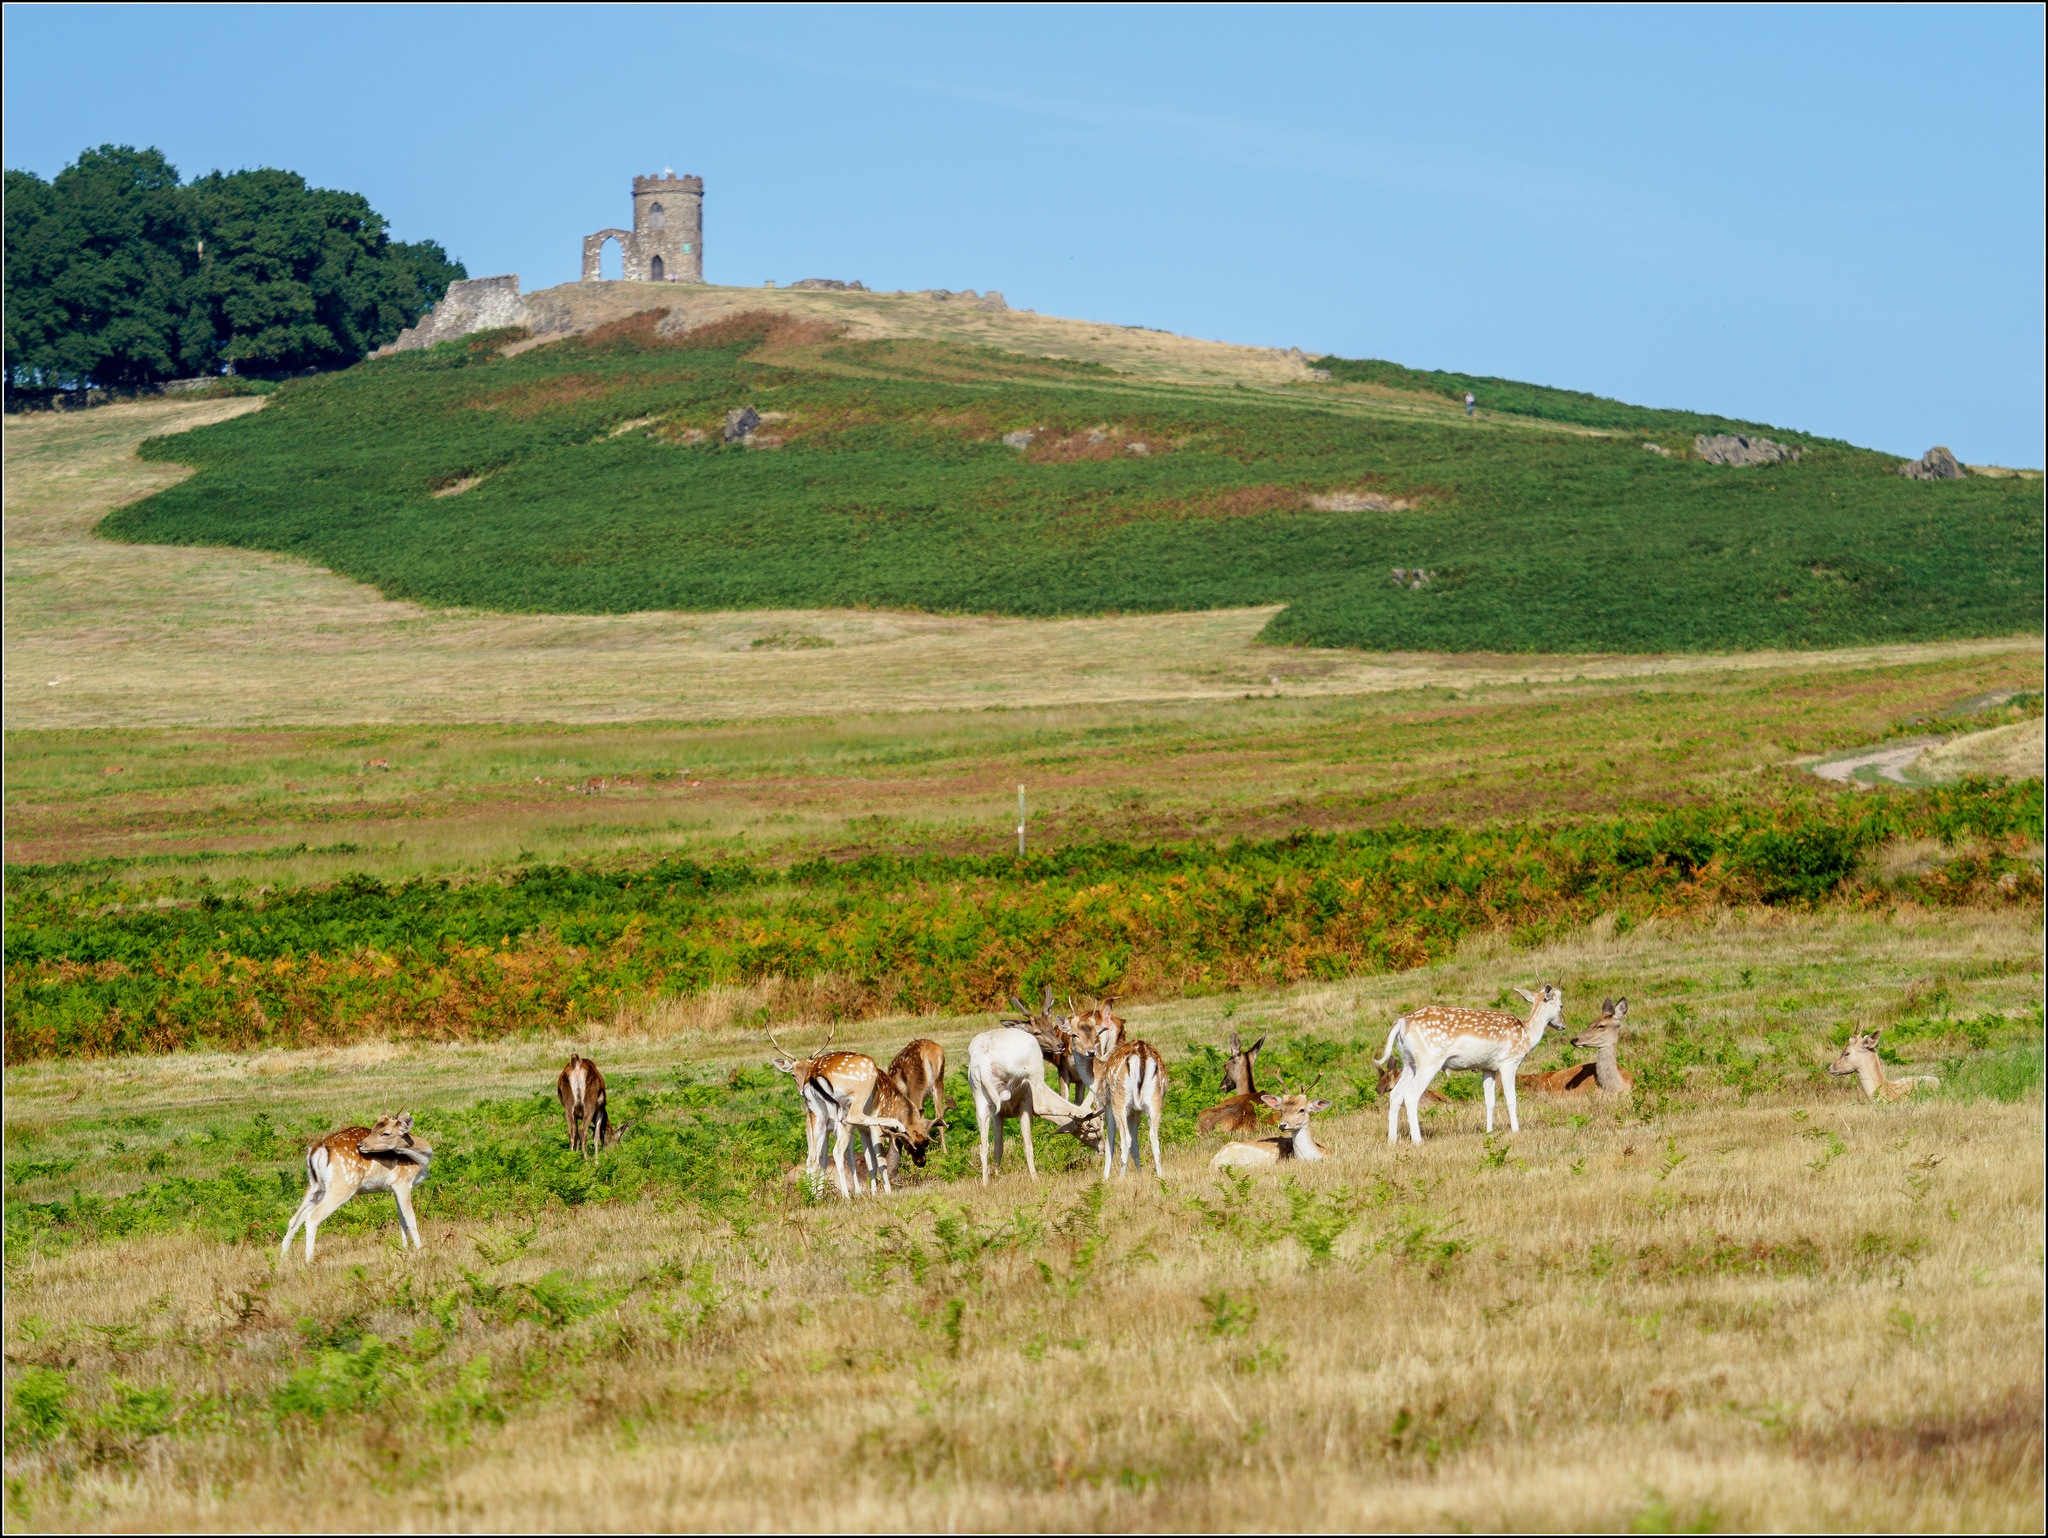 Bradgate in a nutshell, by    Phil Mclver